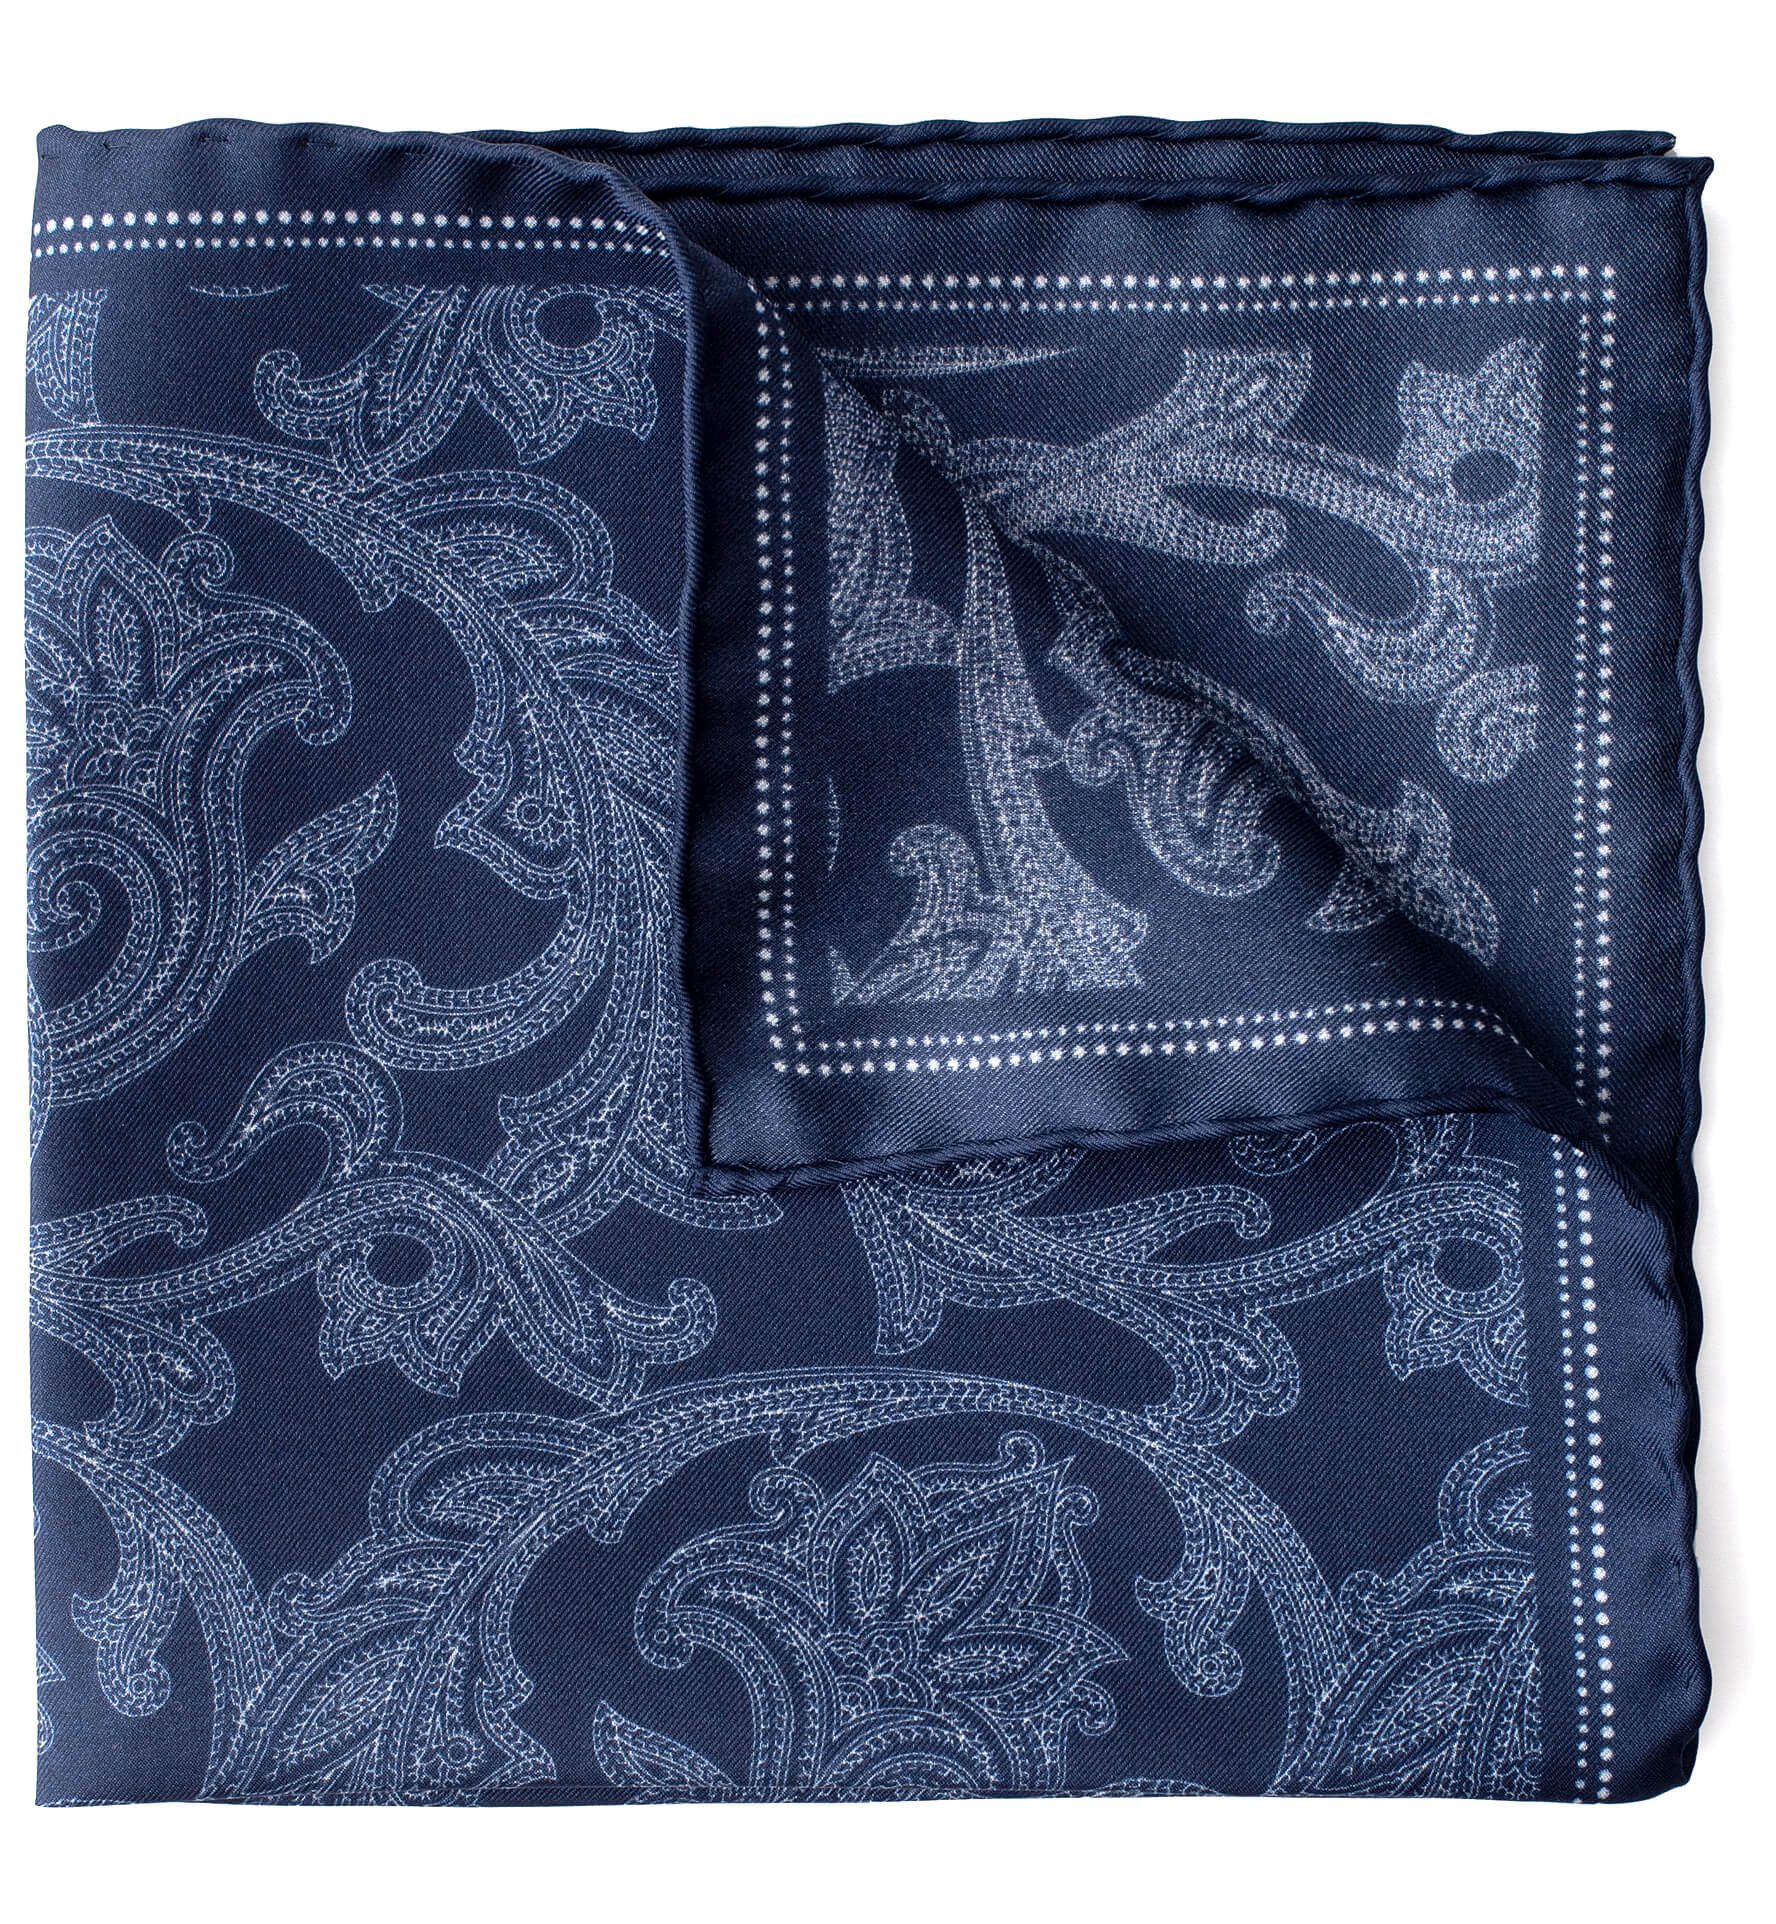 Zoom Image of Navy Paisley Silk Pocket Square